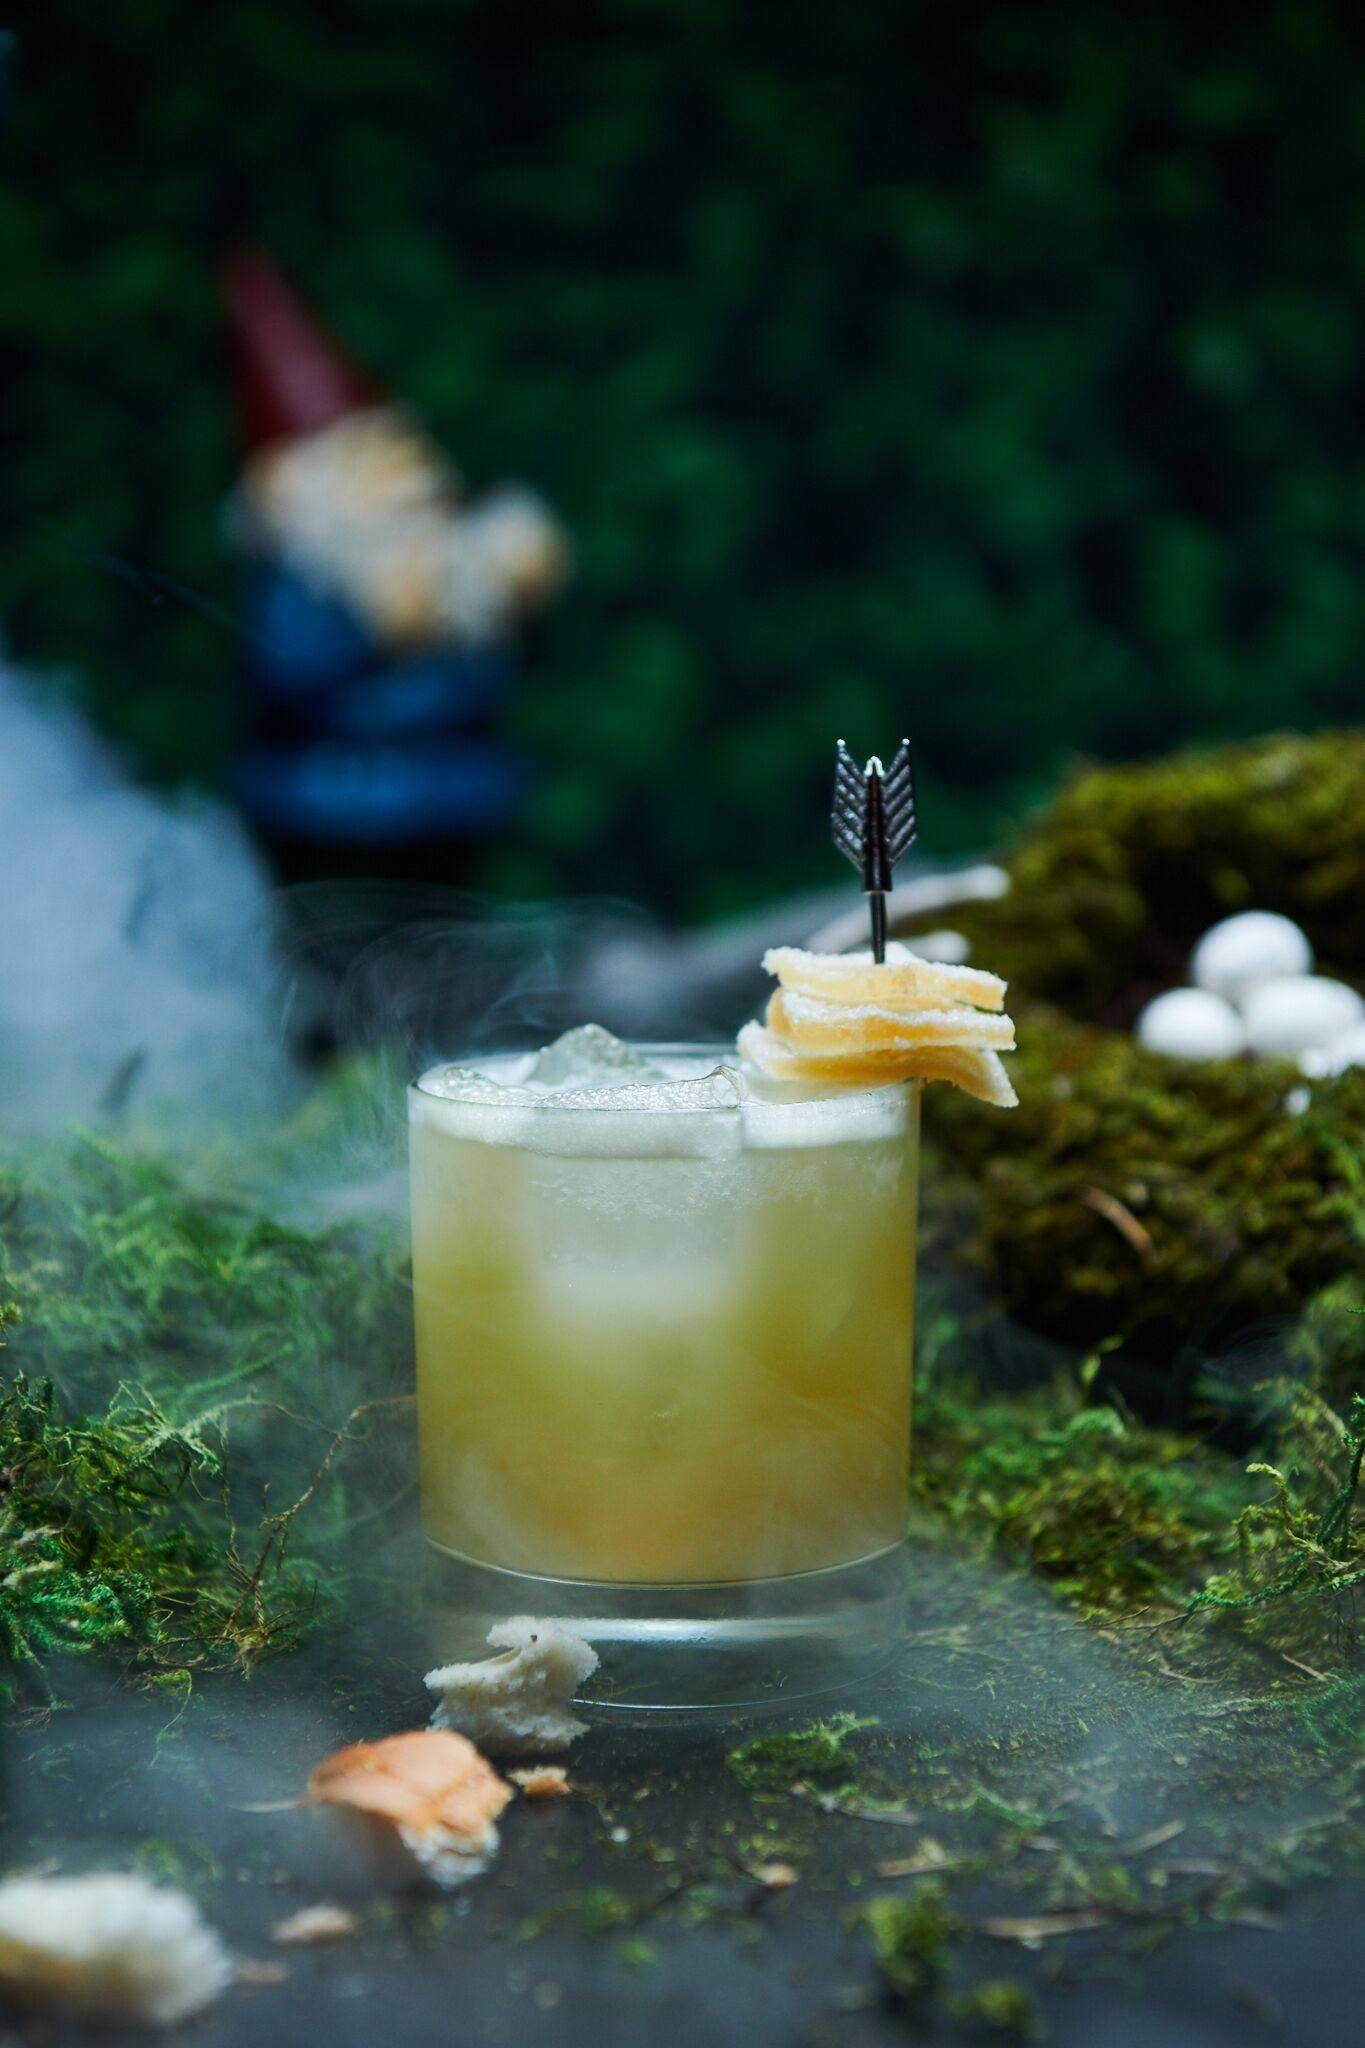 A drink called Crumby Directions pays homage to Hansel and Gretel's trail of bread crumbs. Photograph courtesy of Drink Company.